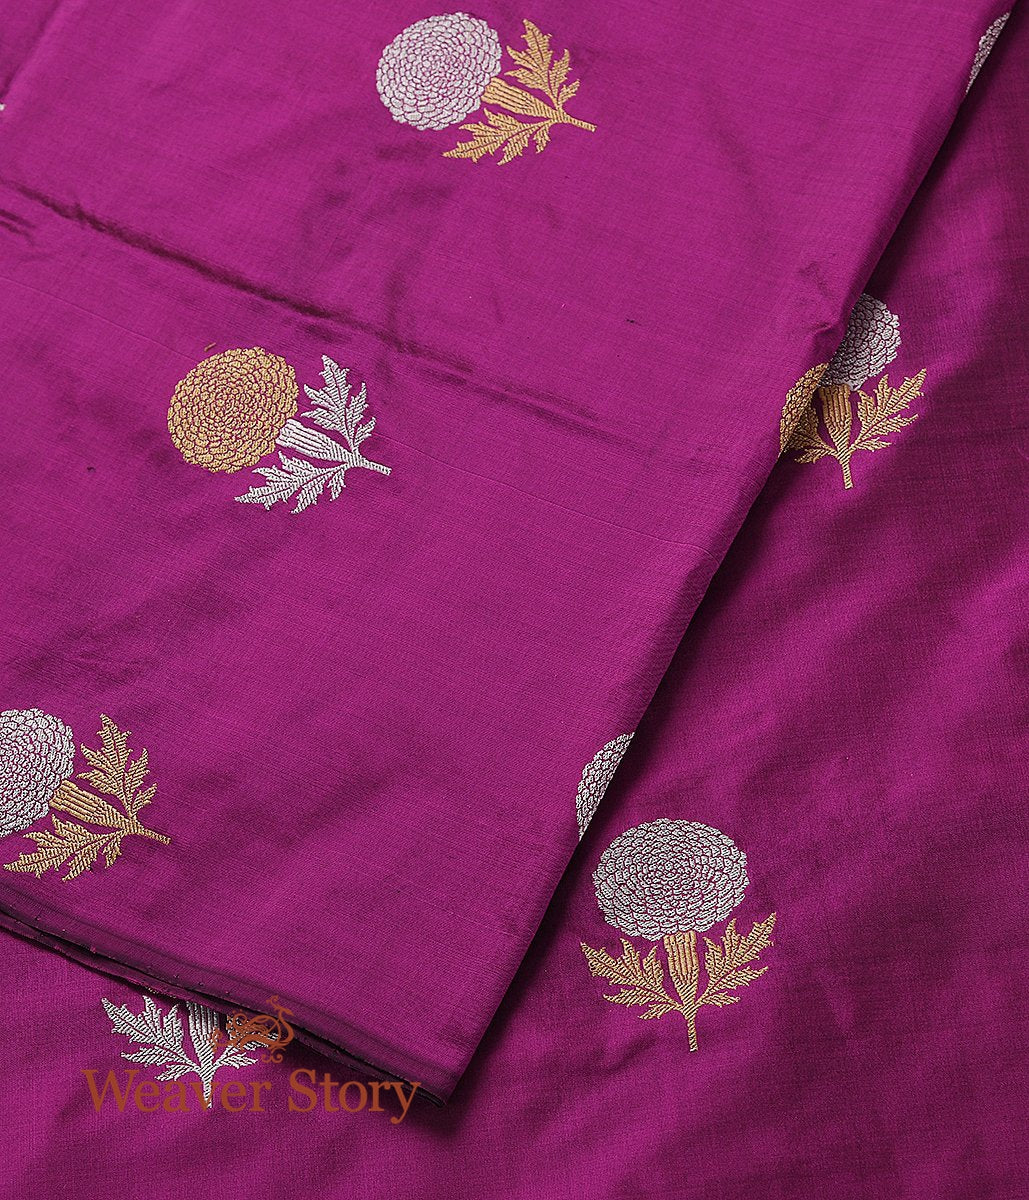 Handwoven Wine Katan Silk Fabric with Kadhwa Booti in gold and silver zari